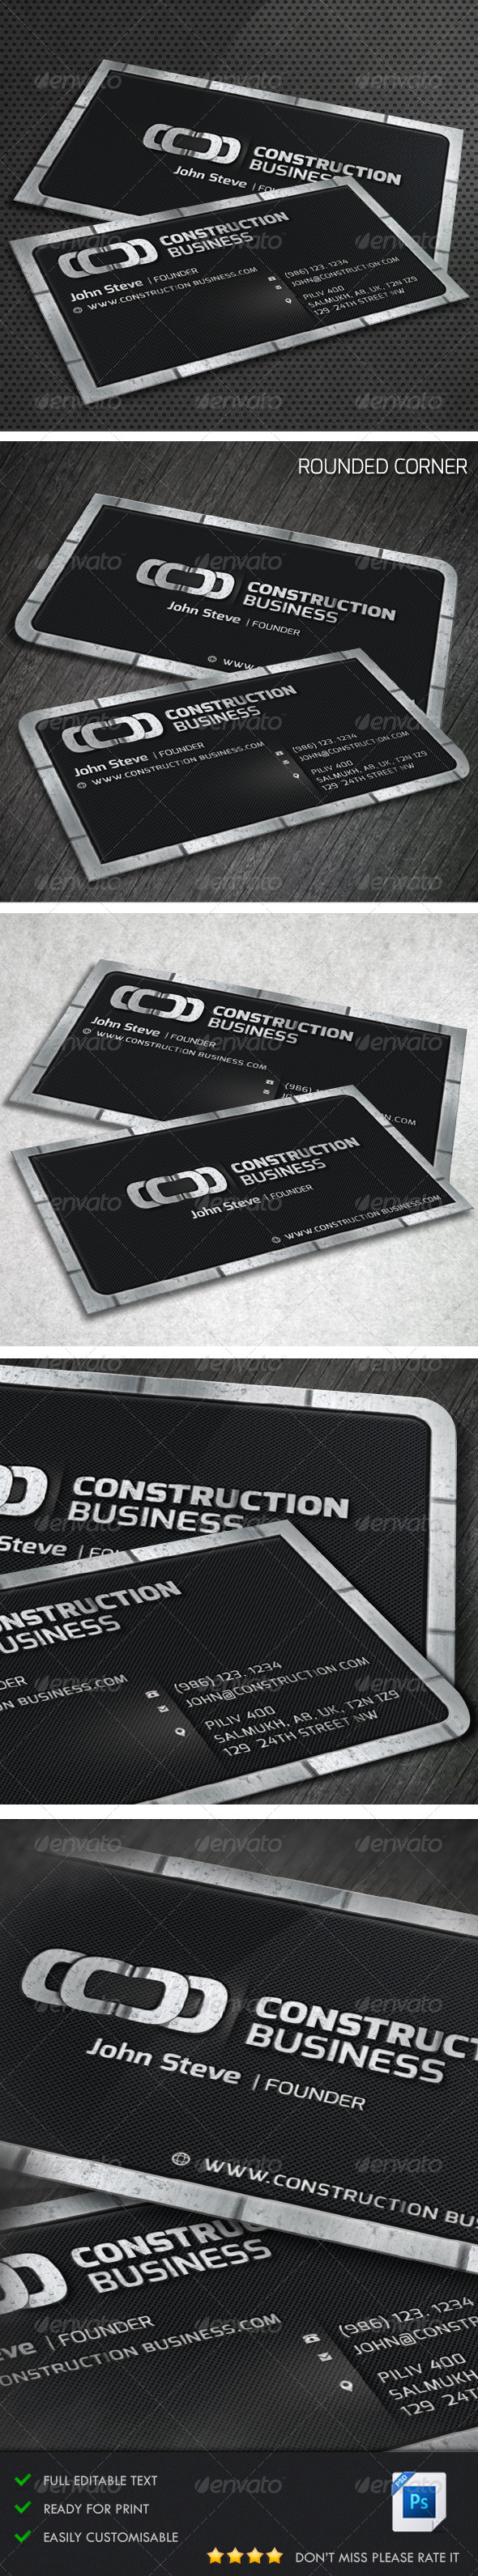 GraphicRiver Construction Metalic Business Card 5384467